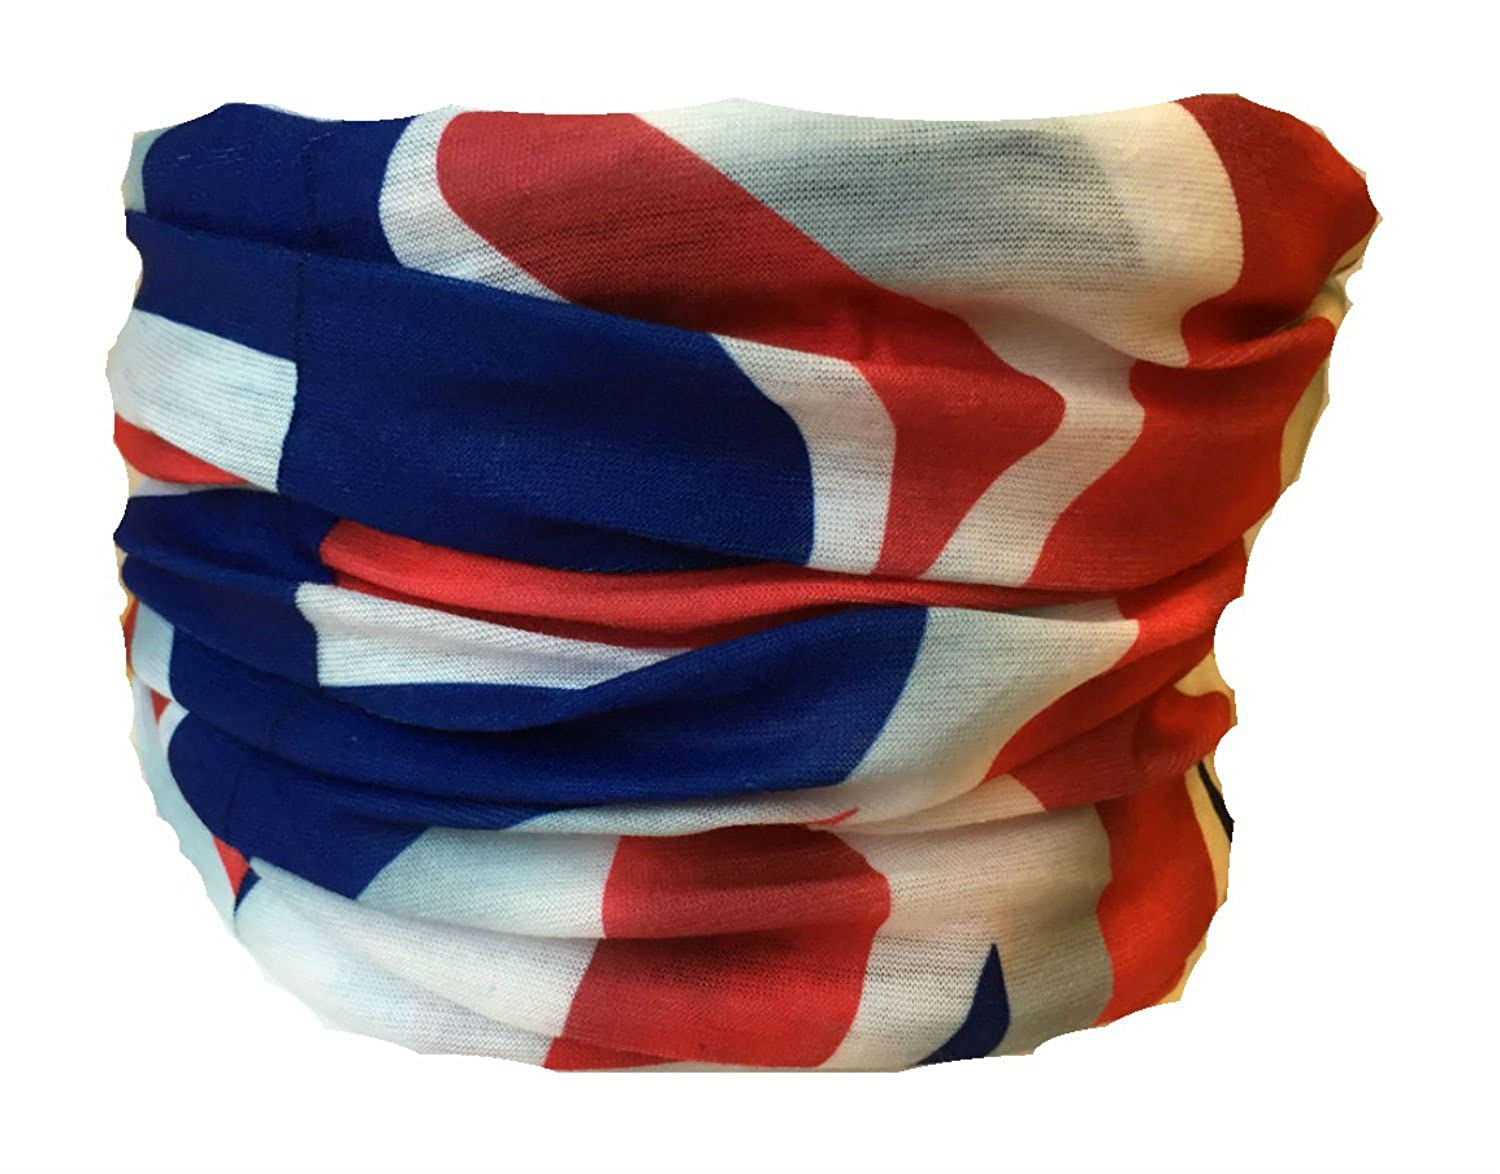 Multifunction Neckwarmer, Snood, Hat, Scarf and Hood in Union Jack print by Monogram